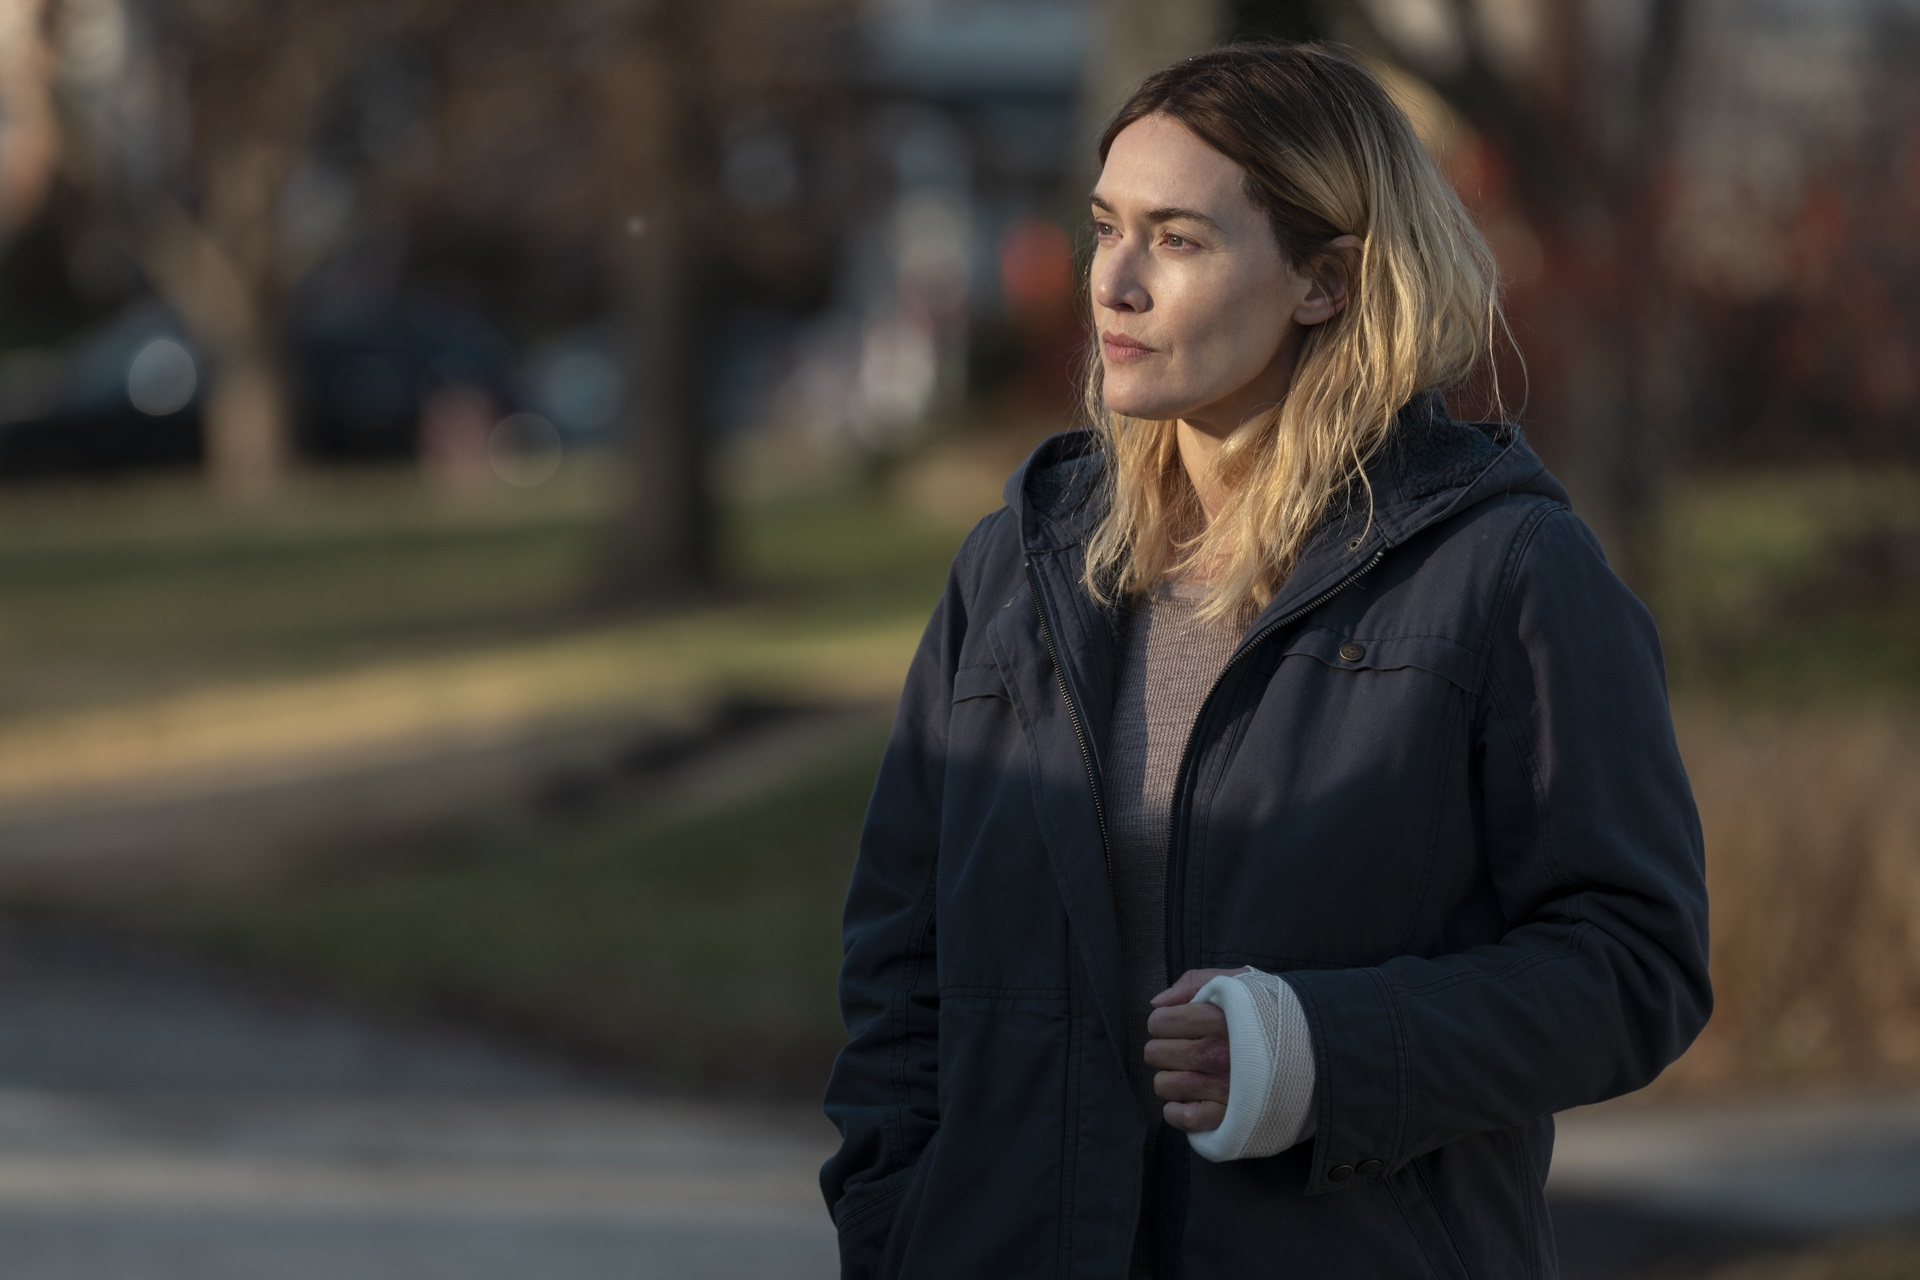 Mare of Easttown Season 1 Kate Winslet as Mare Sheehan